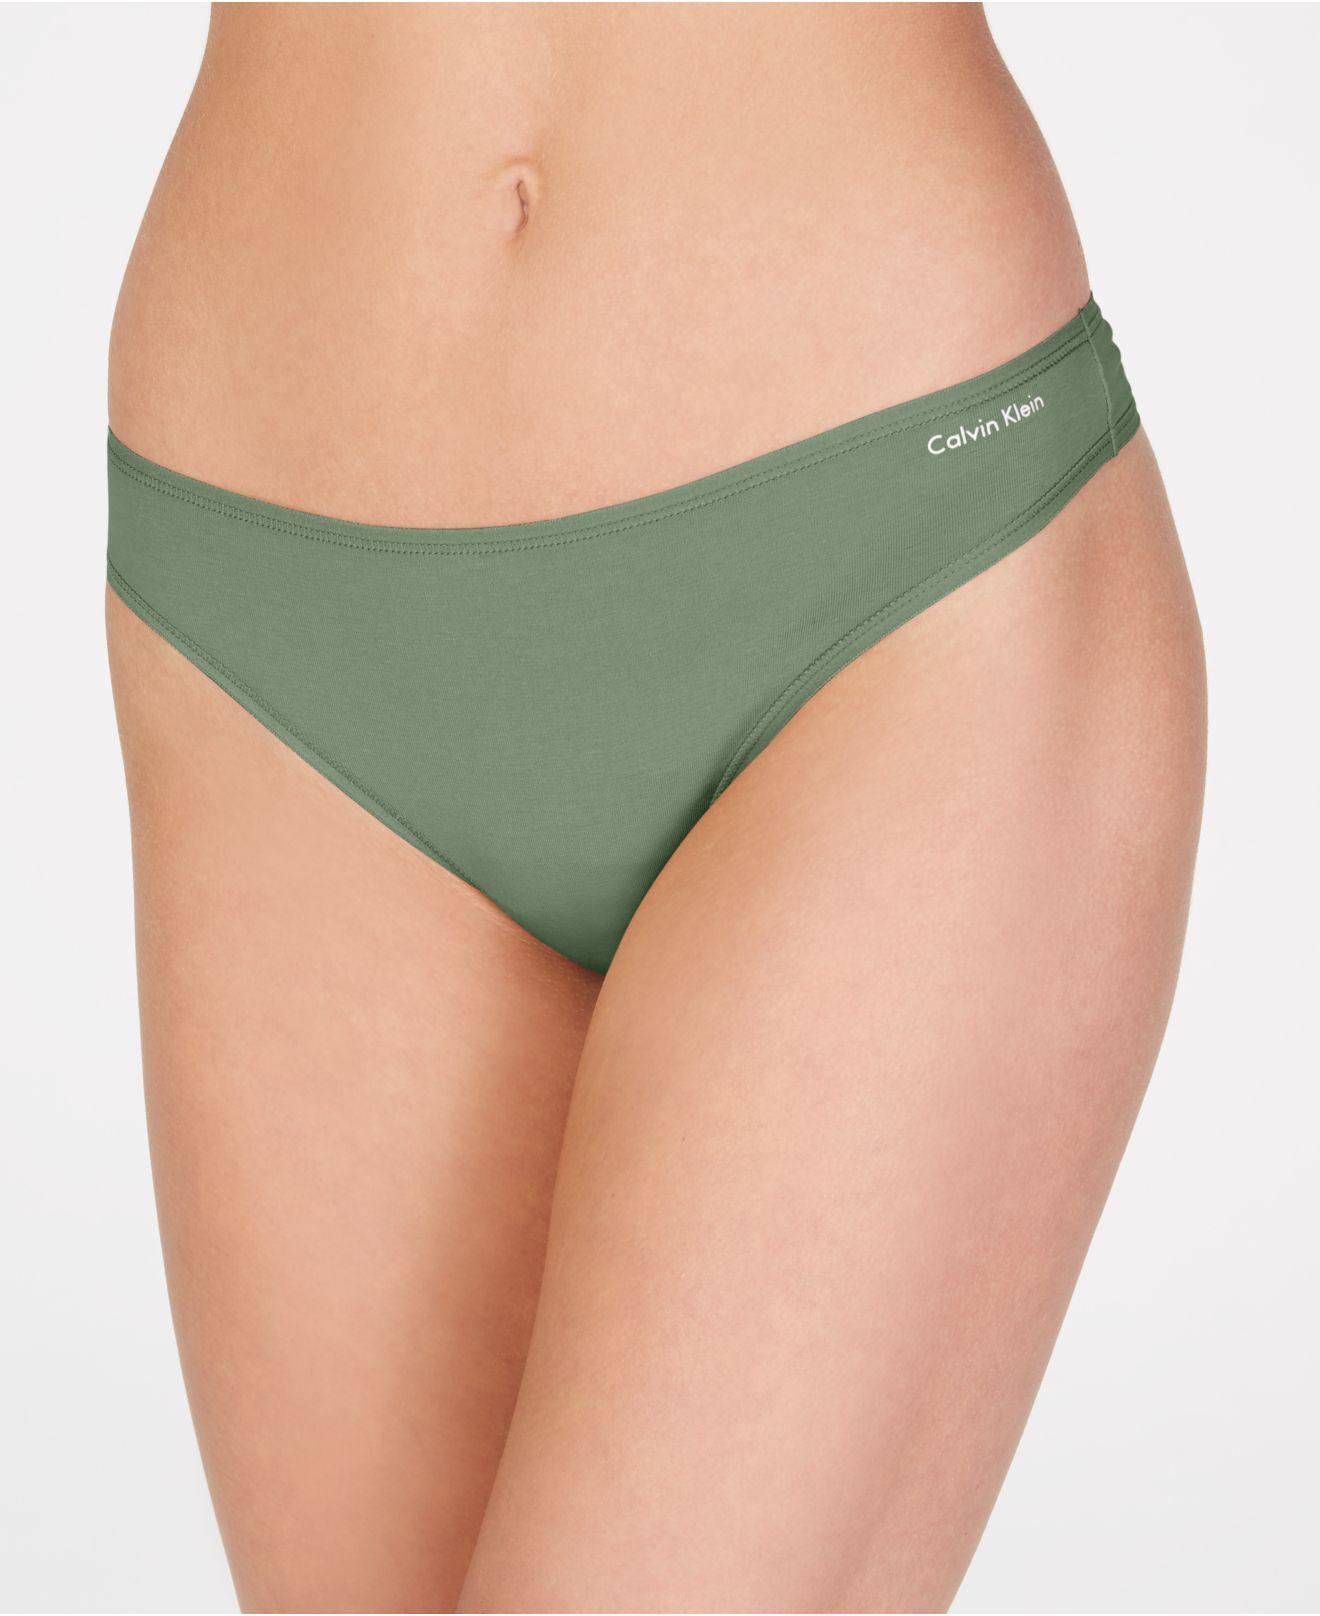 078135fa70 Calvin Klein - Green Cotton Form Thong Qd3643 - Lyst. View fullscreen